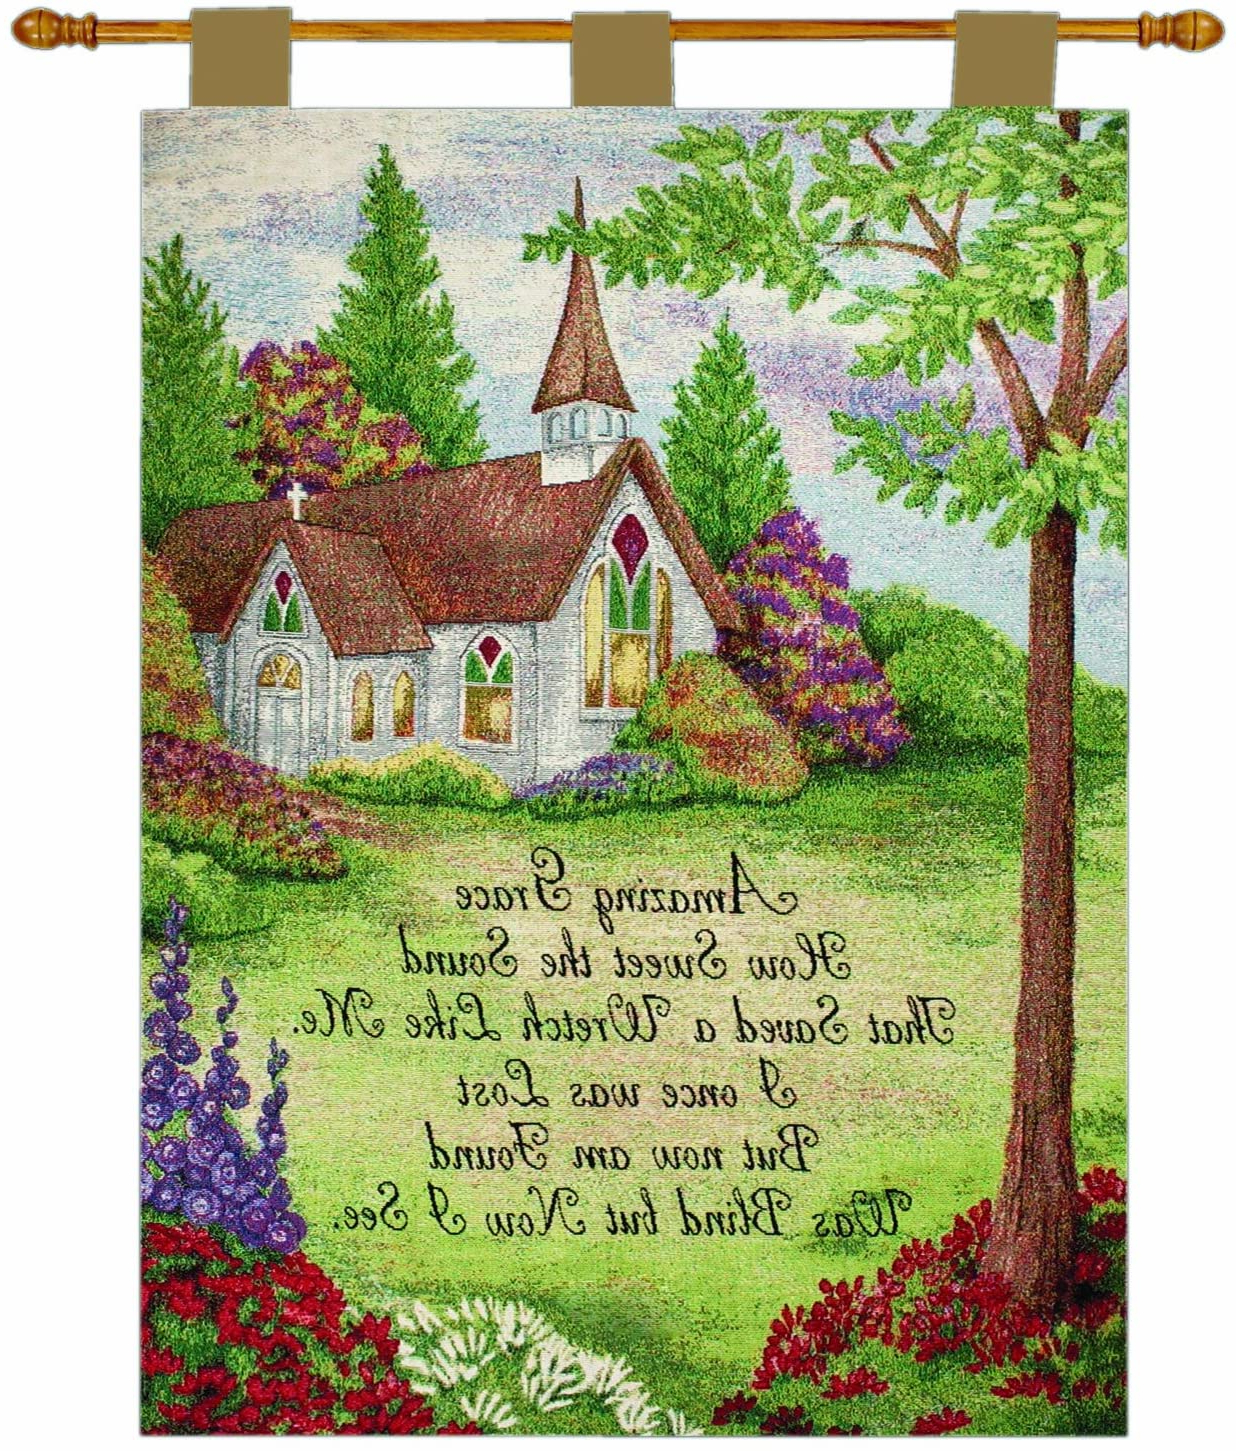 Best And Newest Manual Inspirational Collection Wall Hanging And Finial Rod, Church In The Country With Versenicky Boehme, 26 X 36 Inch Within Blended Fabric Freedom Verse Tapestries And Wall Hangings (View 14 of 20)